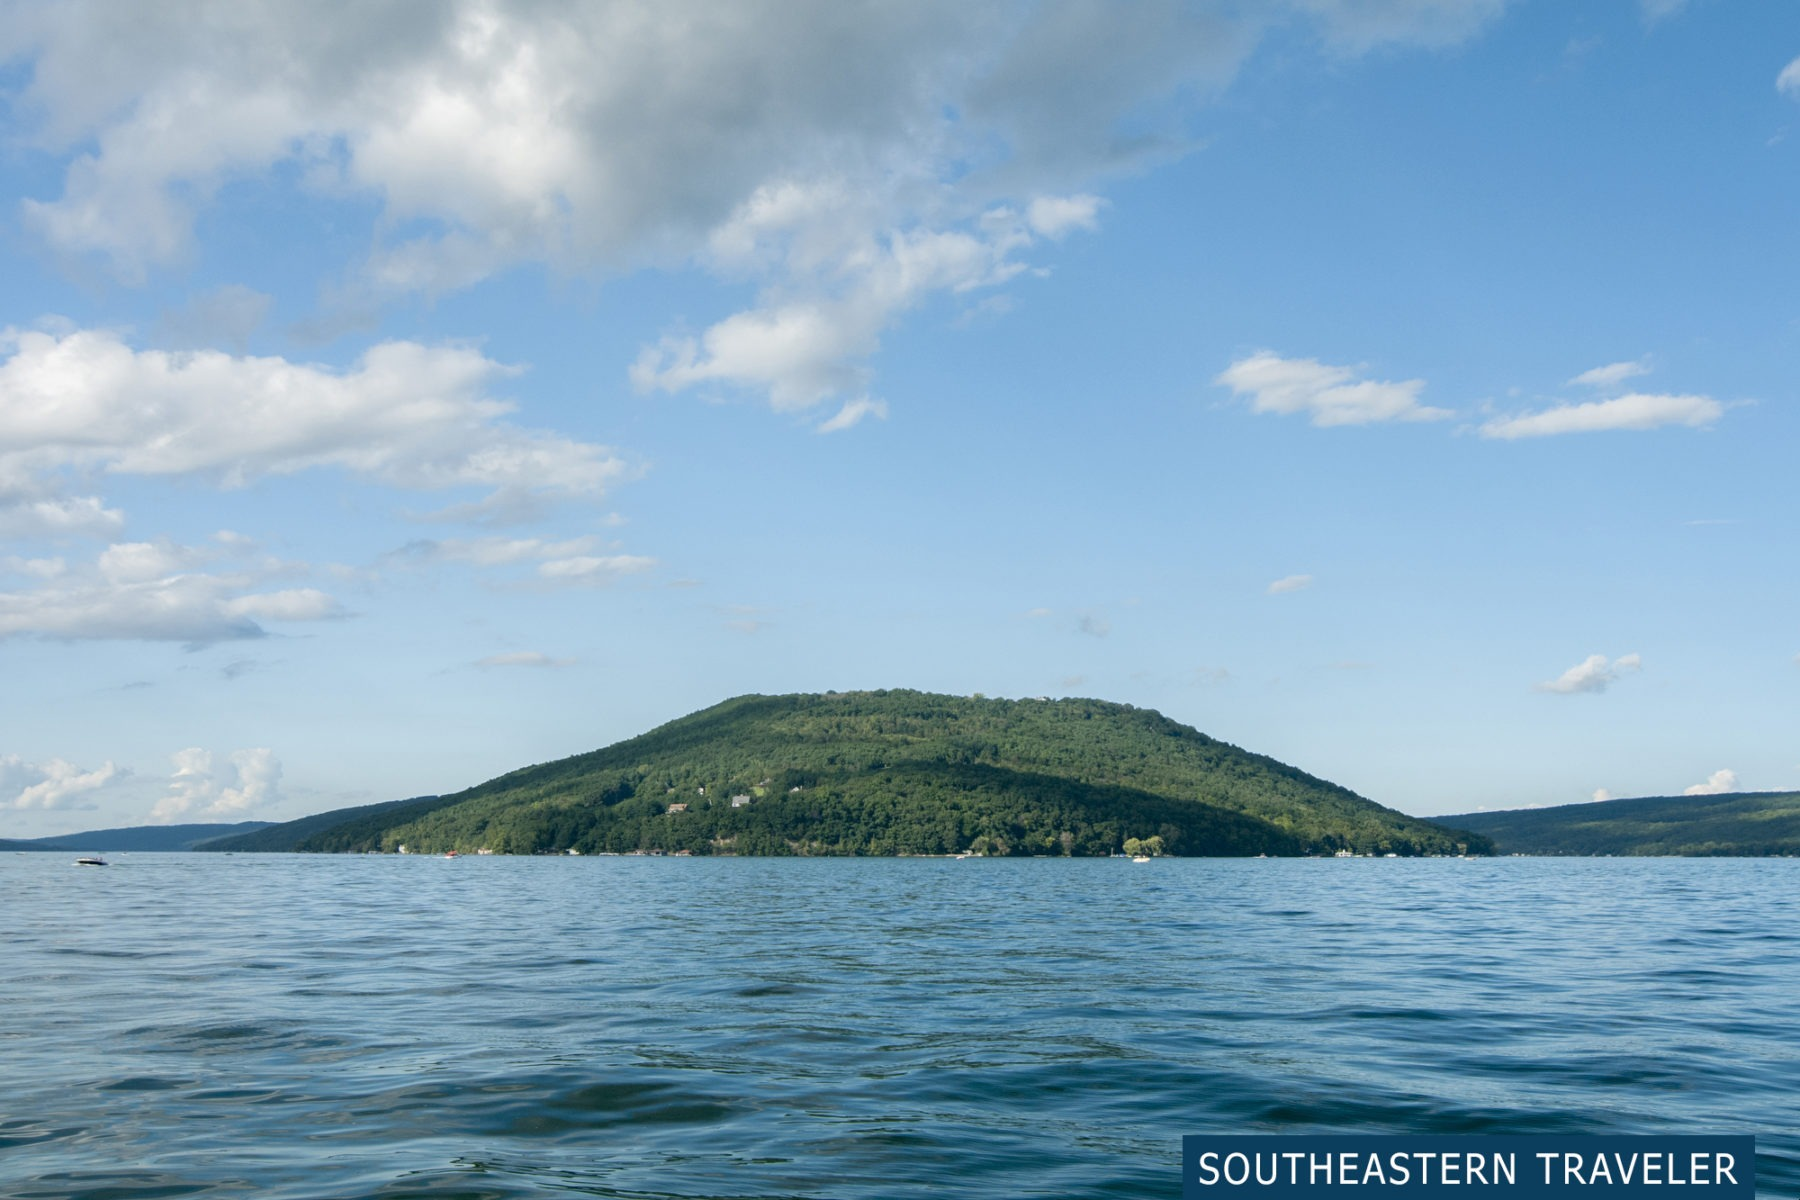 View of The Bluff from a boat on Keuka Lake in Hammondsport, New York